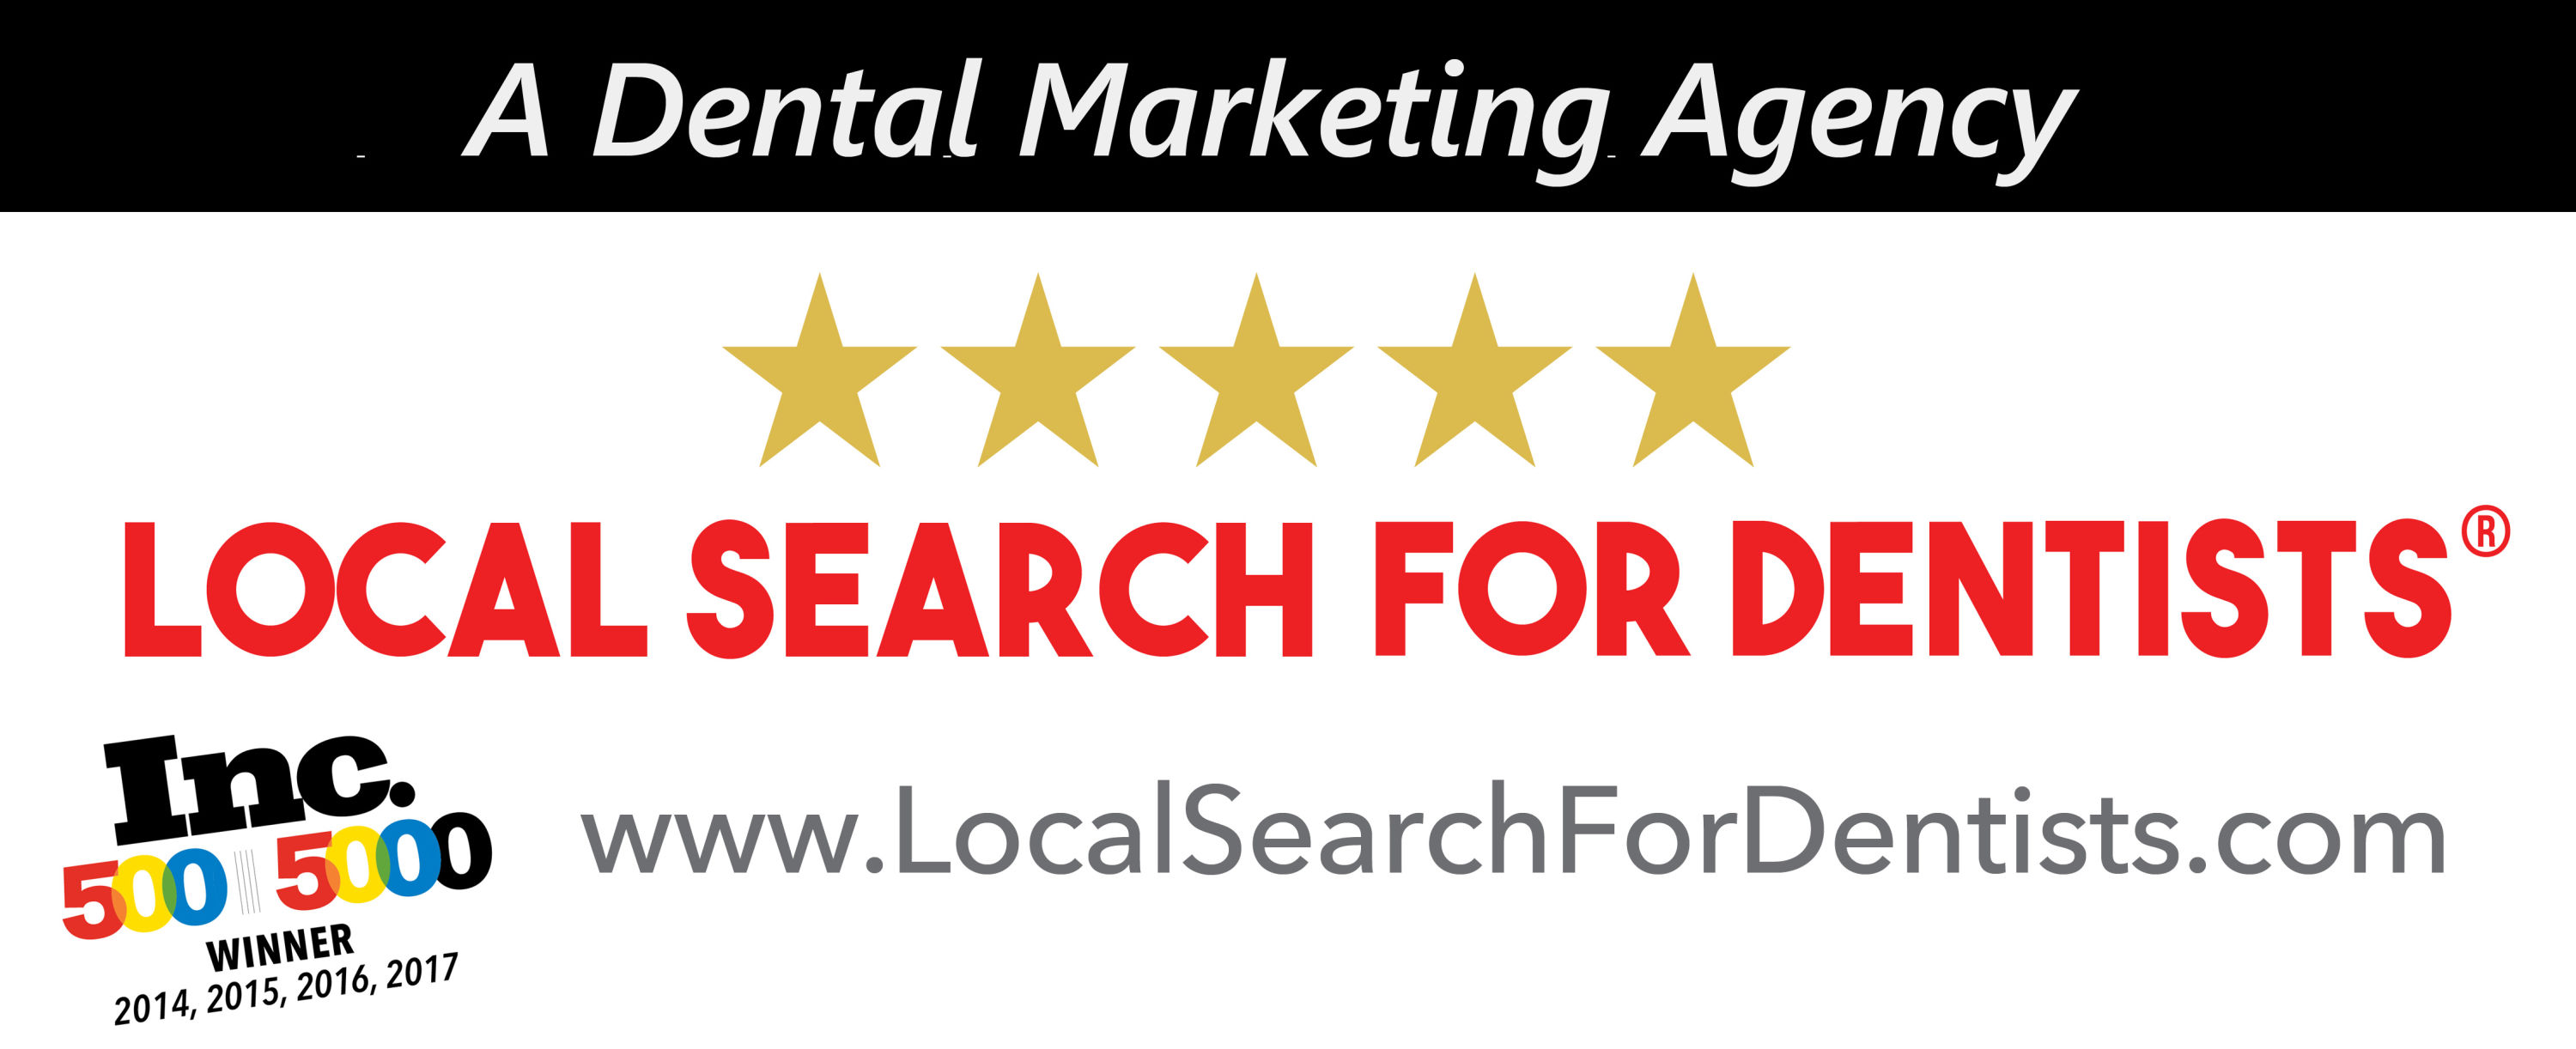 Local Search for Dentists